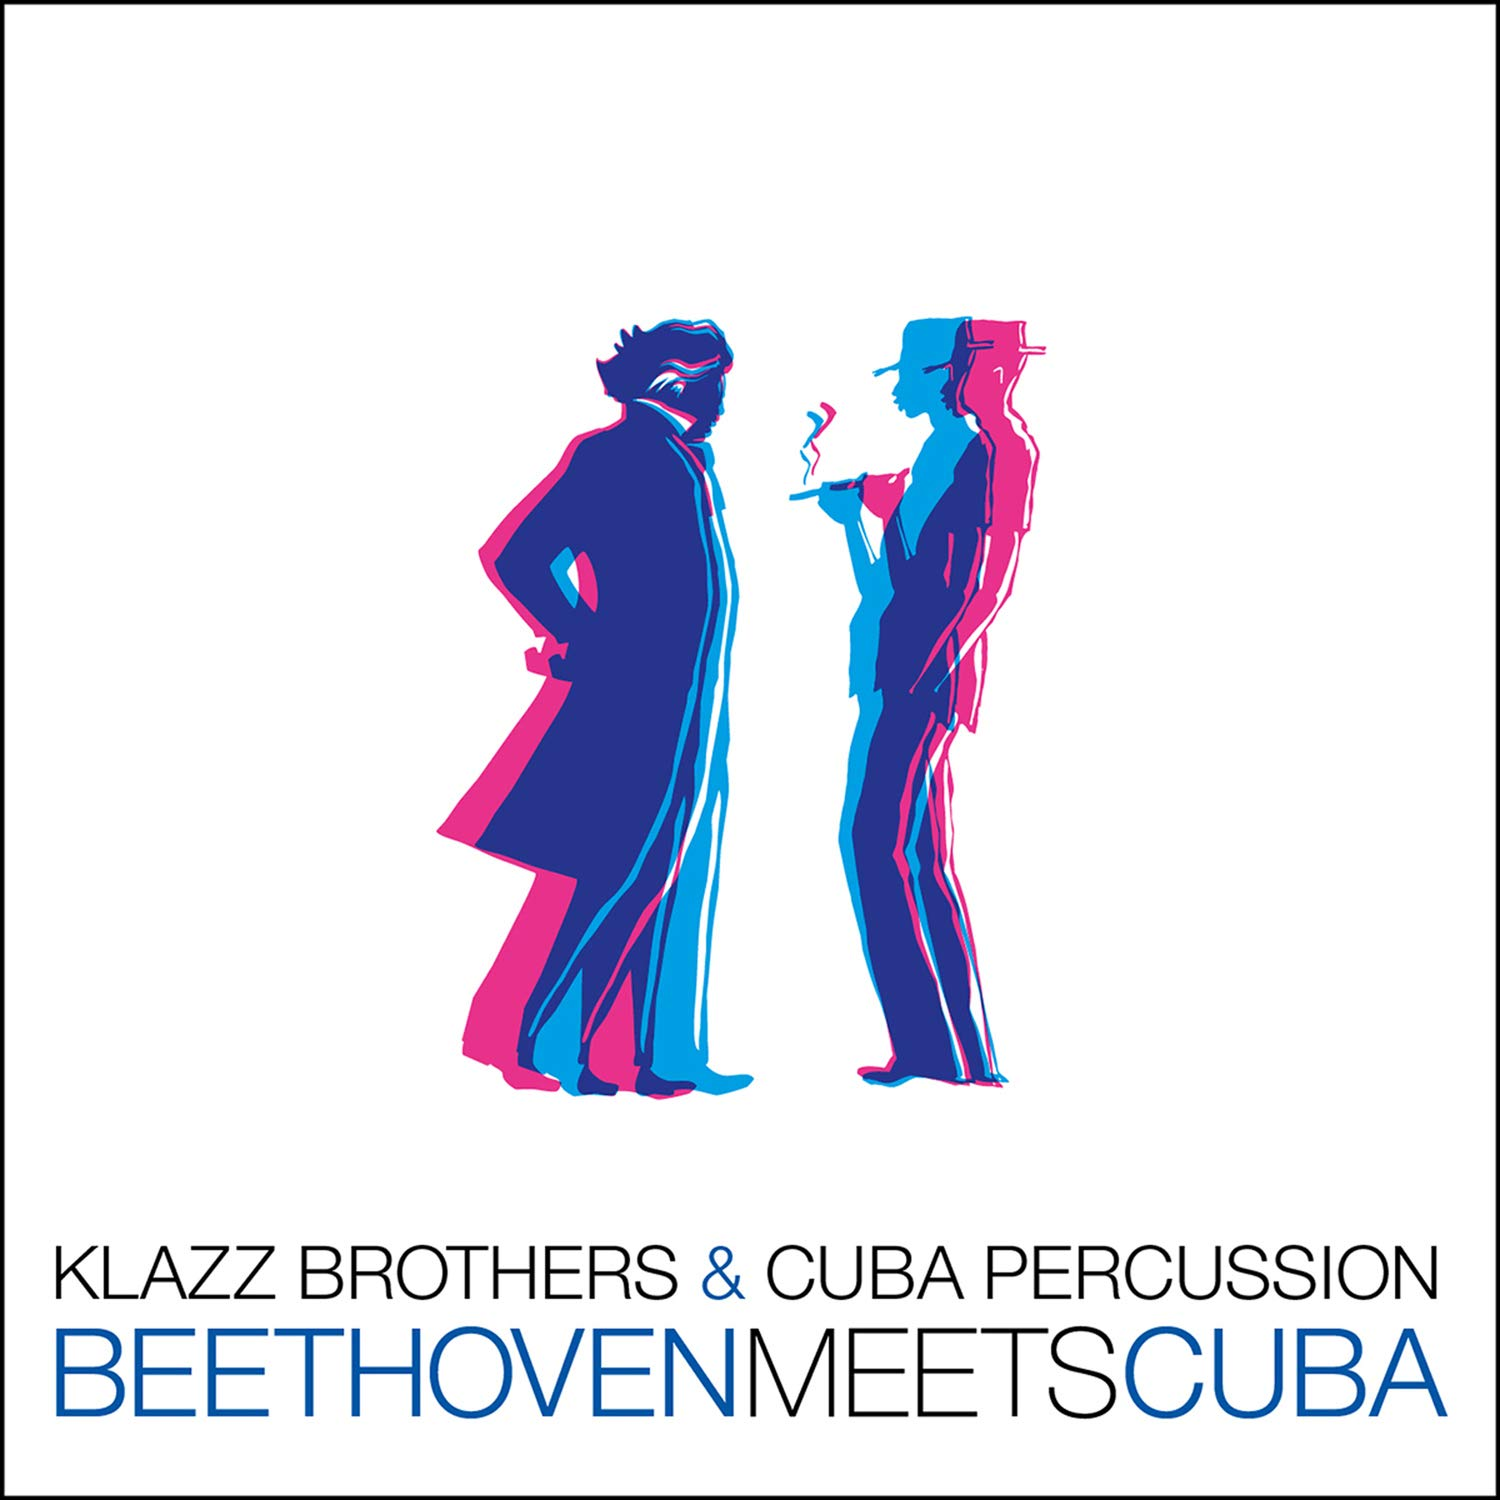 KLAZZ BROTHERS - Klazz Brothers & Cuba Percussion : Beethoven Meets Cuba cover